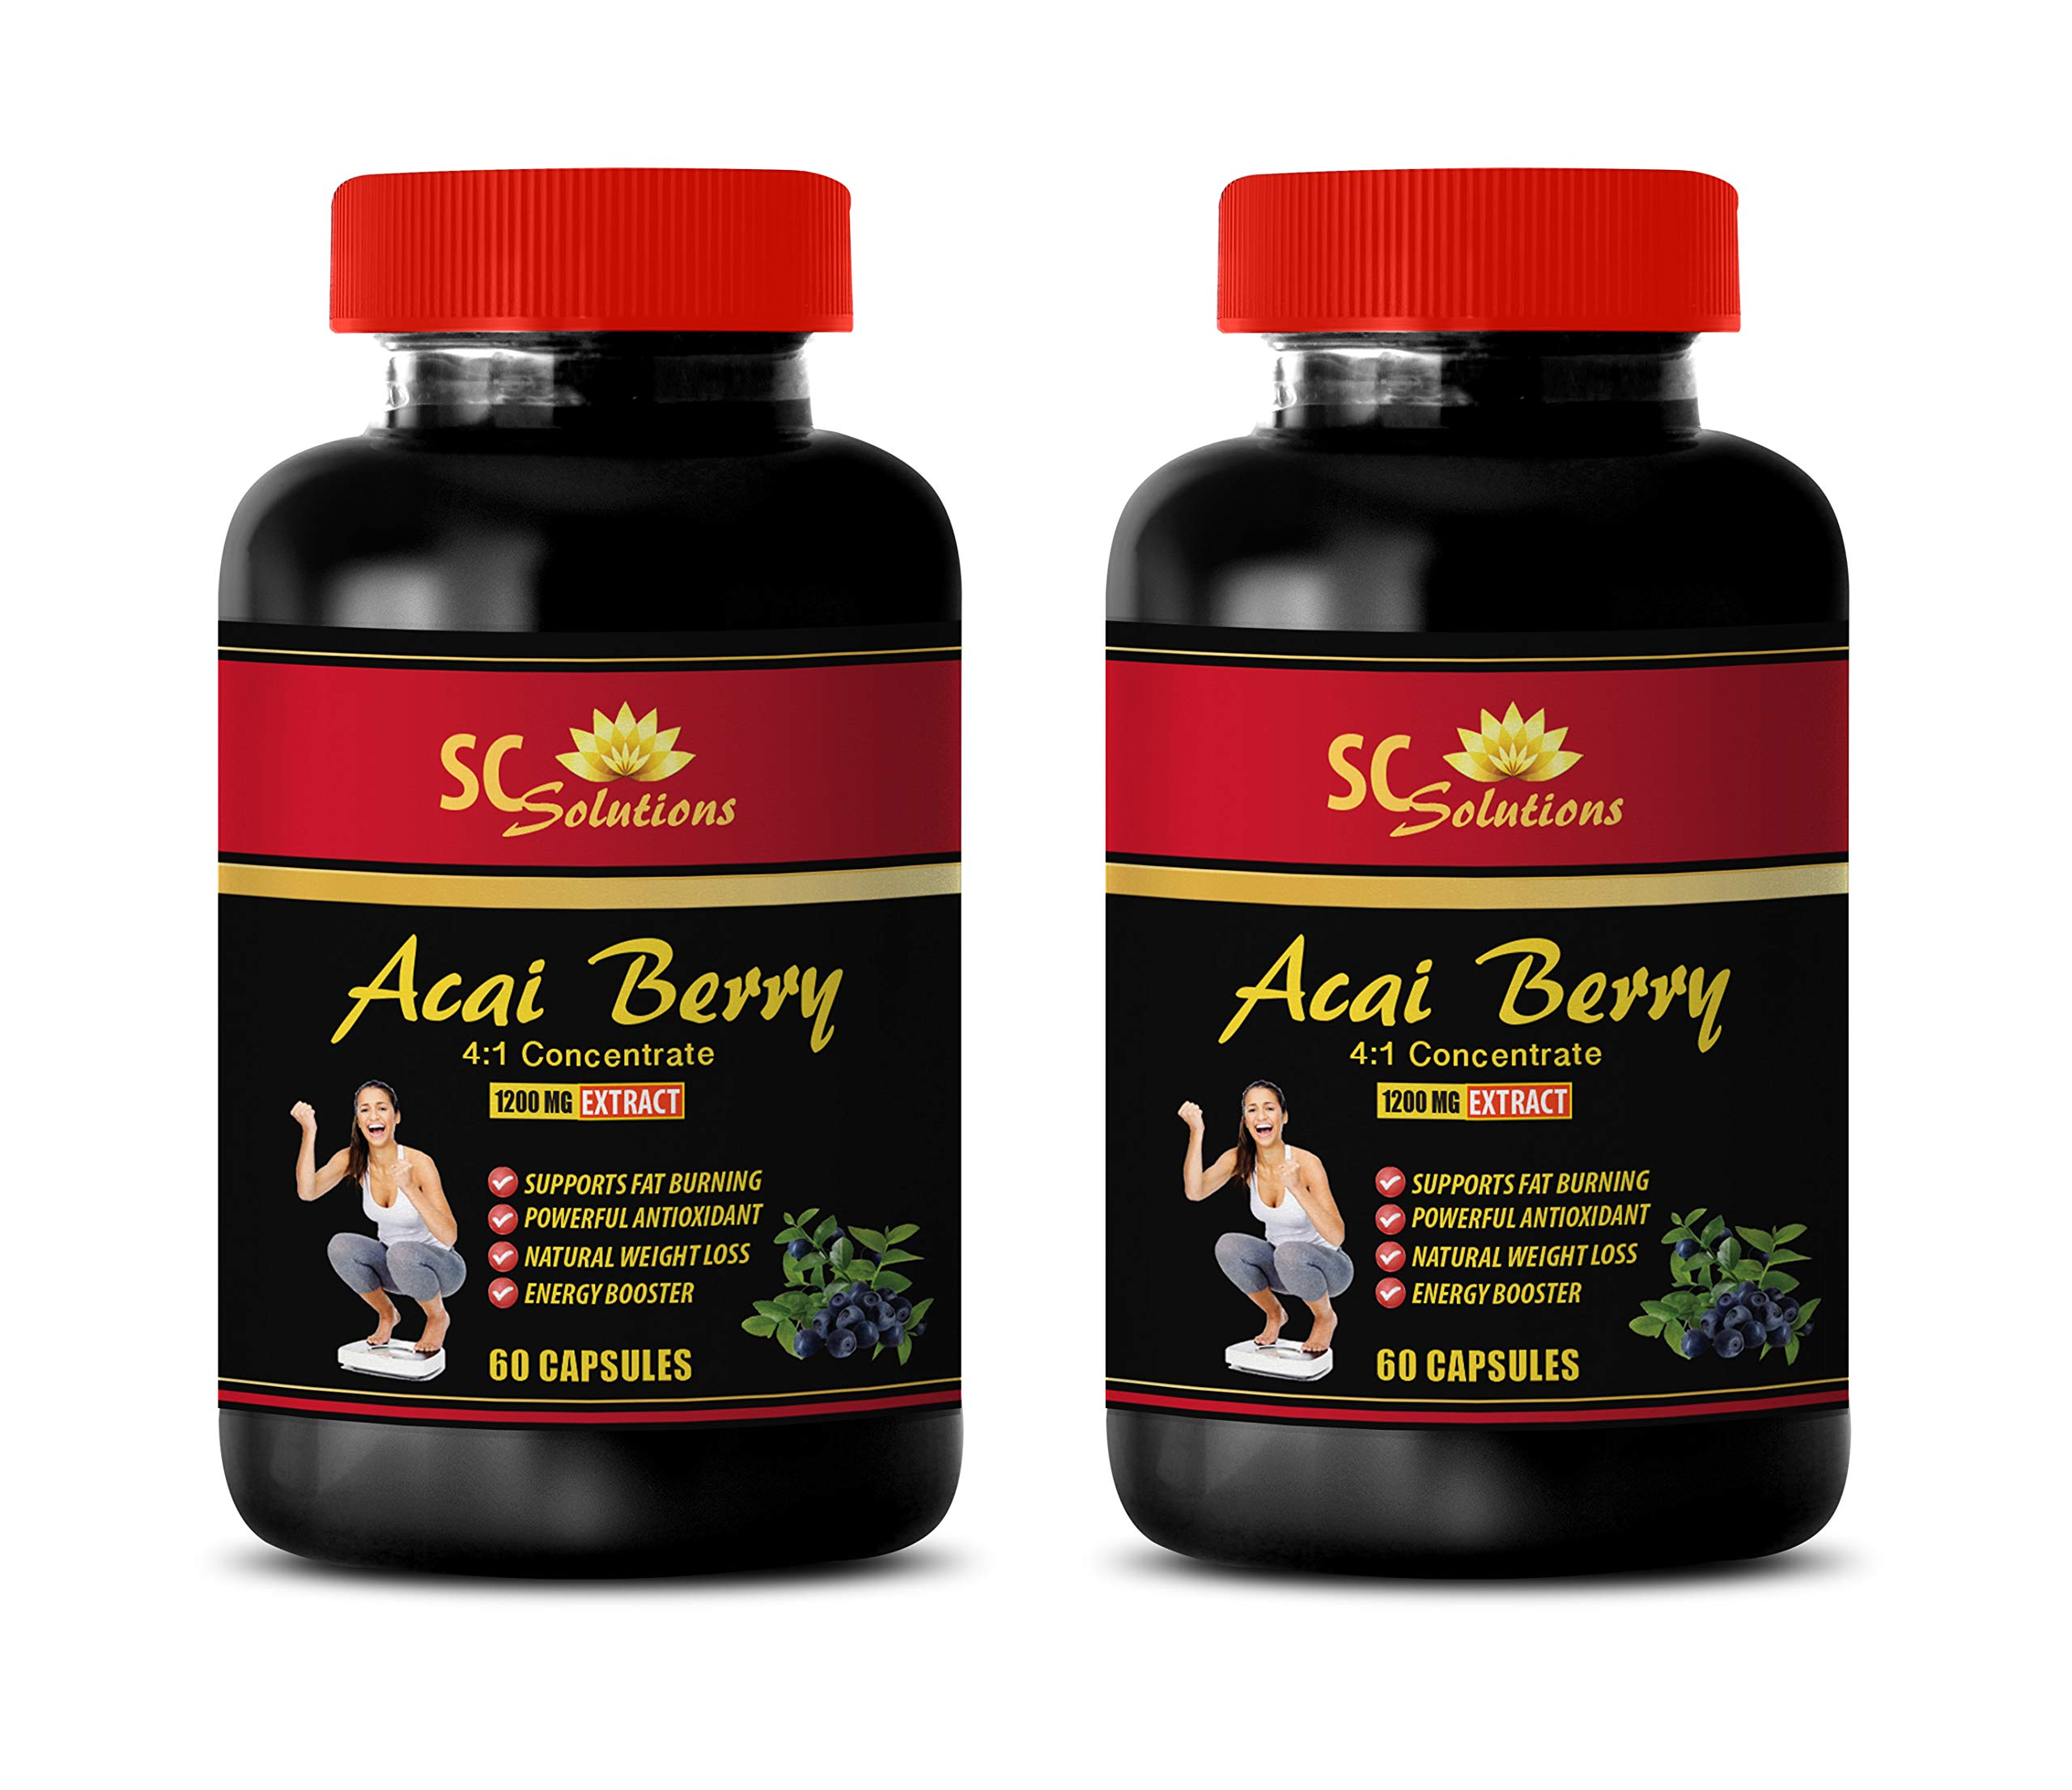 Immune Support for Women - ACAI Berry Extract 1200 Mg - acai Extreme - 2 Bottles (120 Capsules)